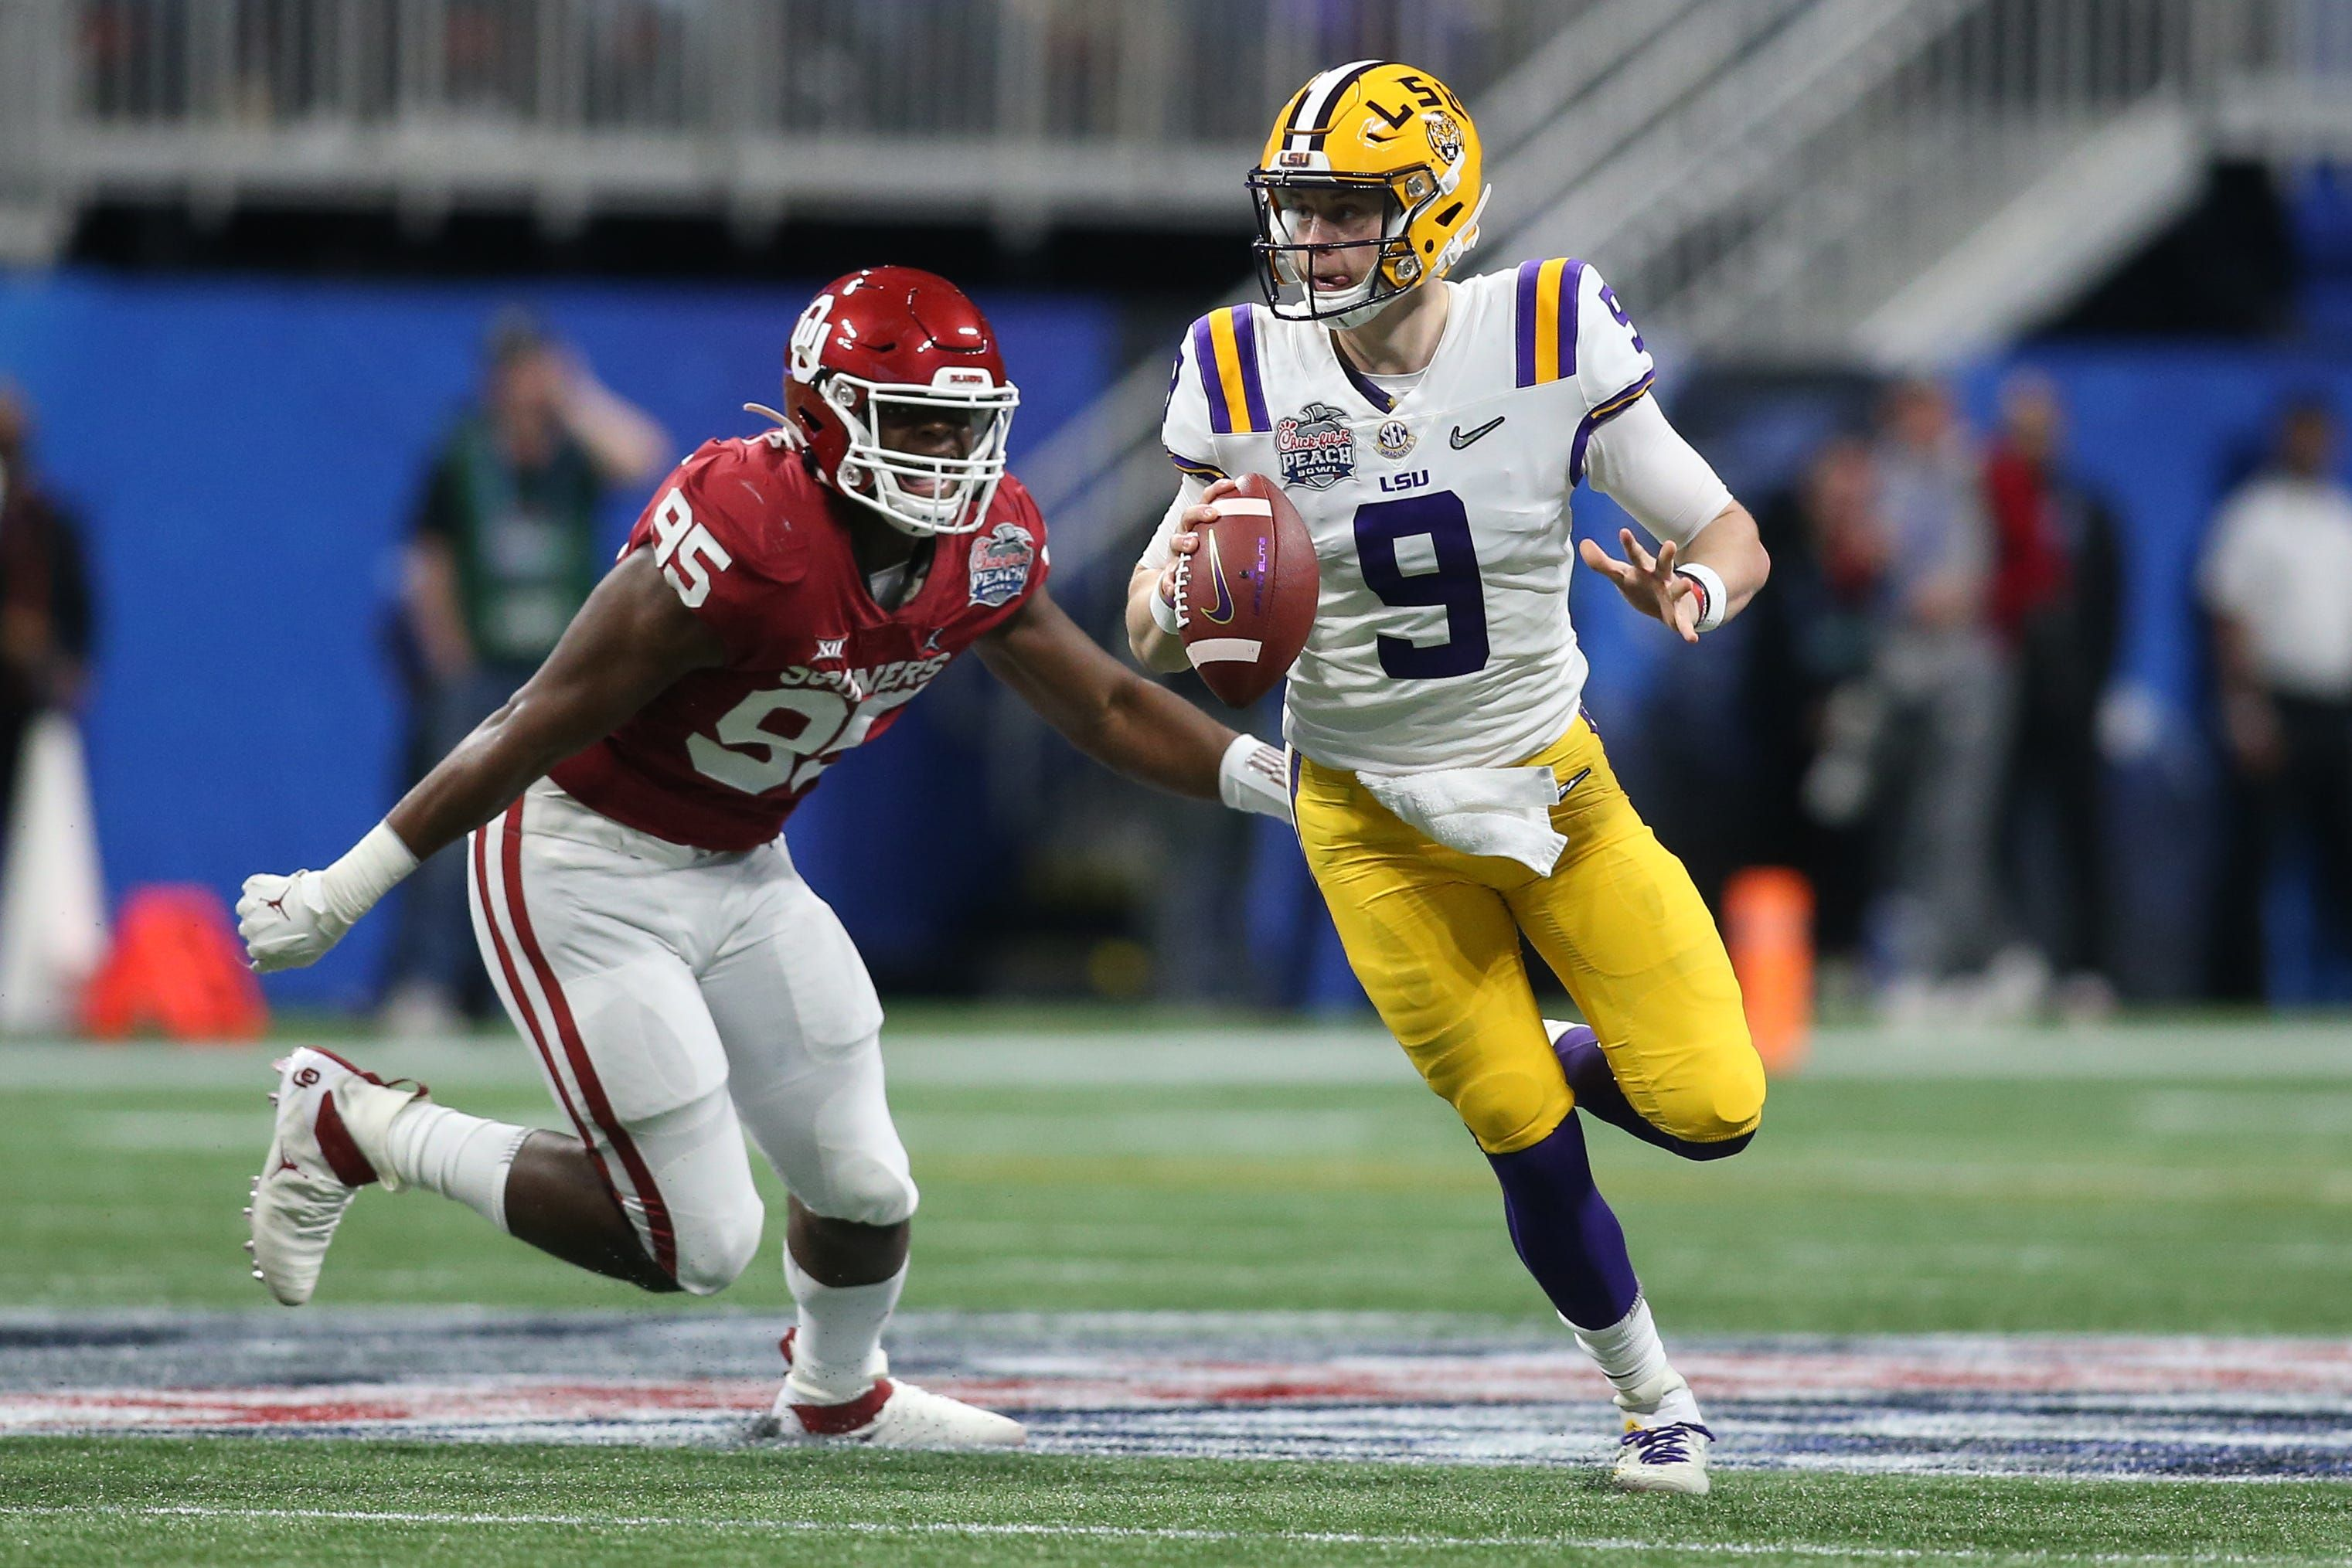 Joe Burrow has recordsetting day as No. 1 LSU dominates